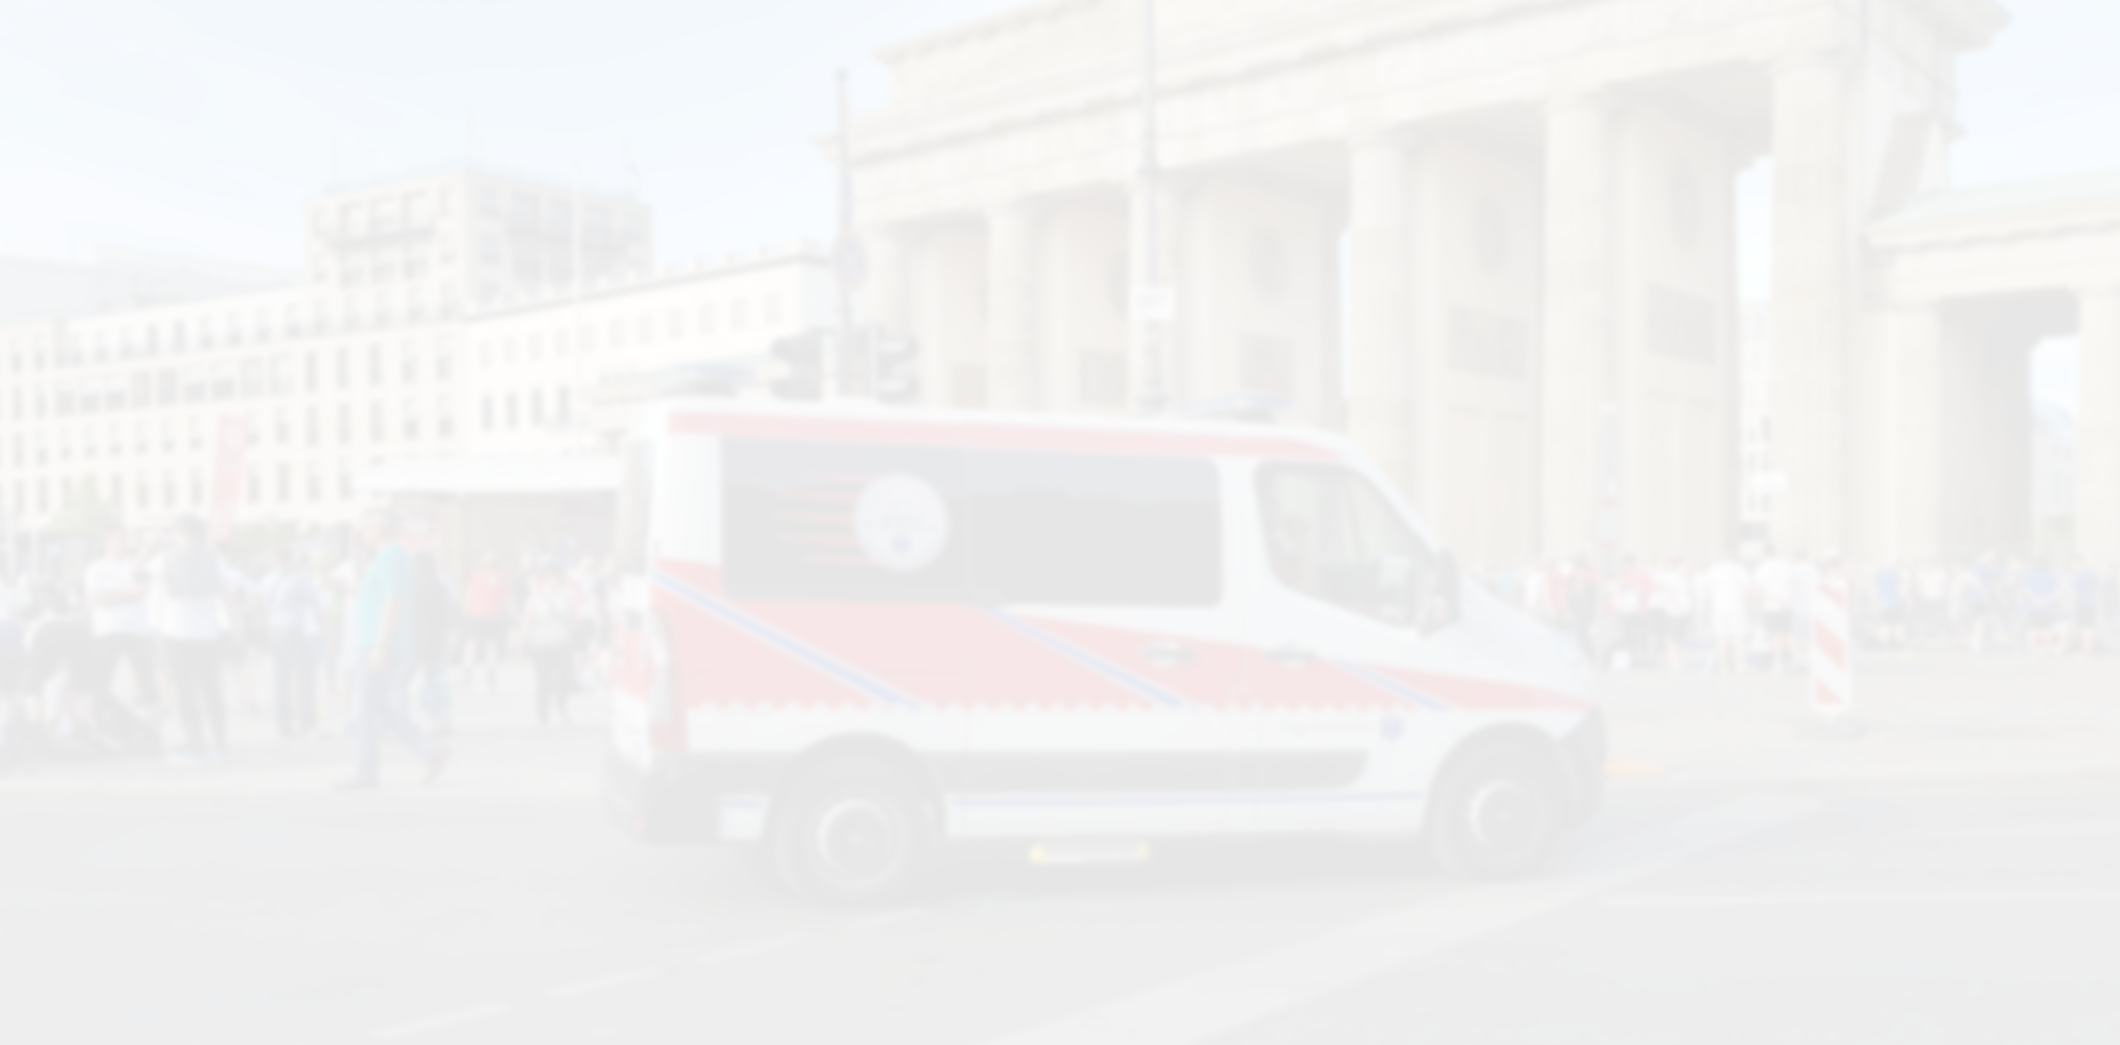 spreeambulanceblack - Spree-Ambulance GmbH & Co. KG